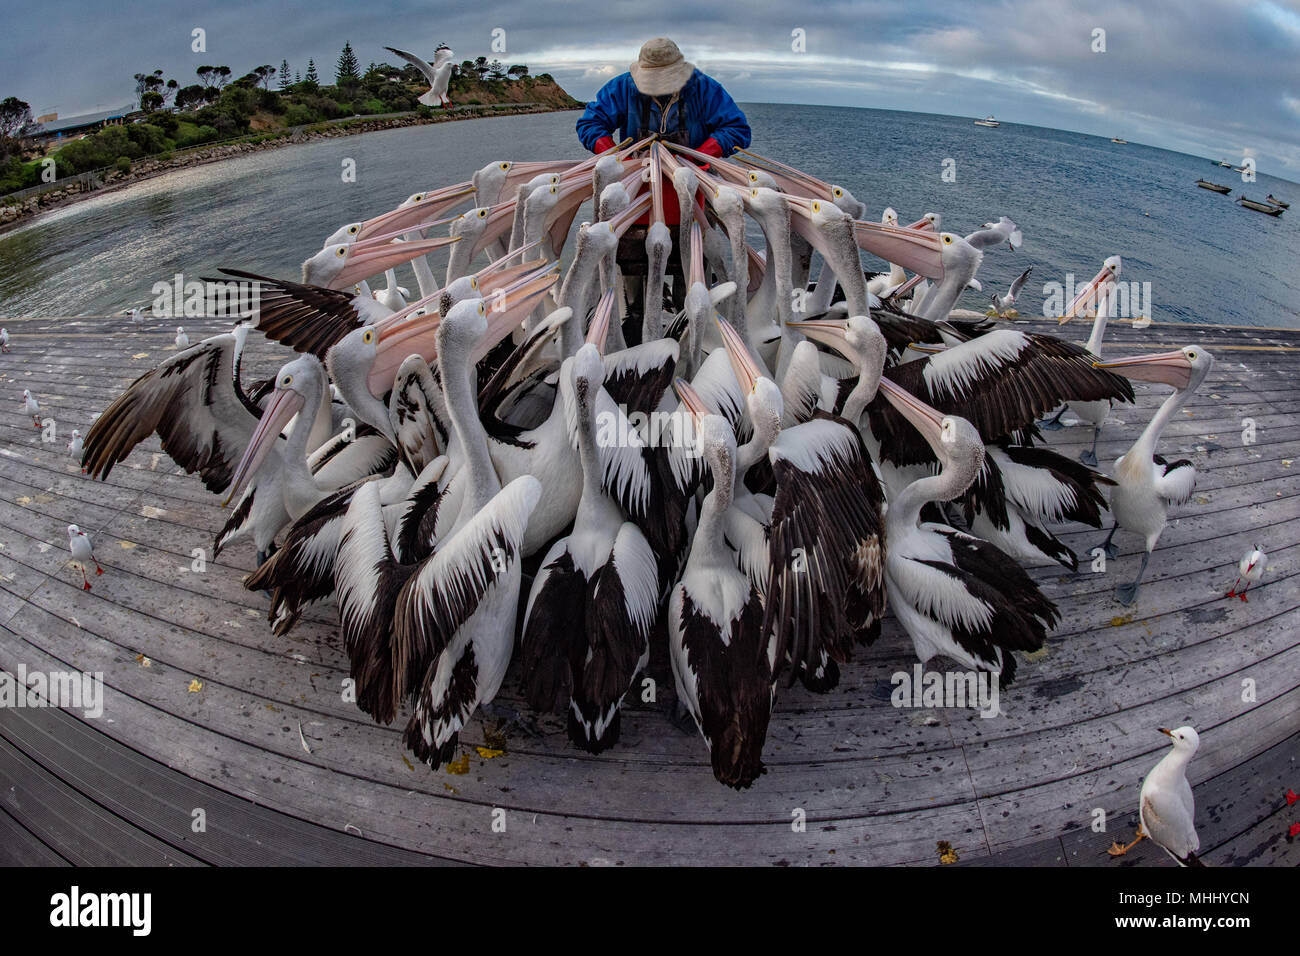 Man while feeding pelicans in Kangaroo Island australia Stock Photo